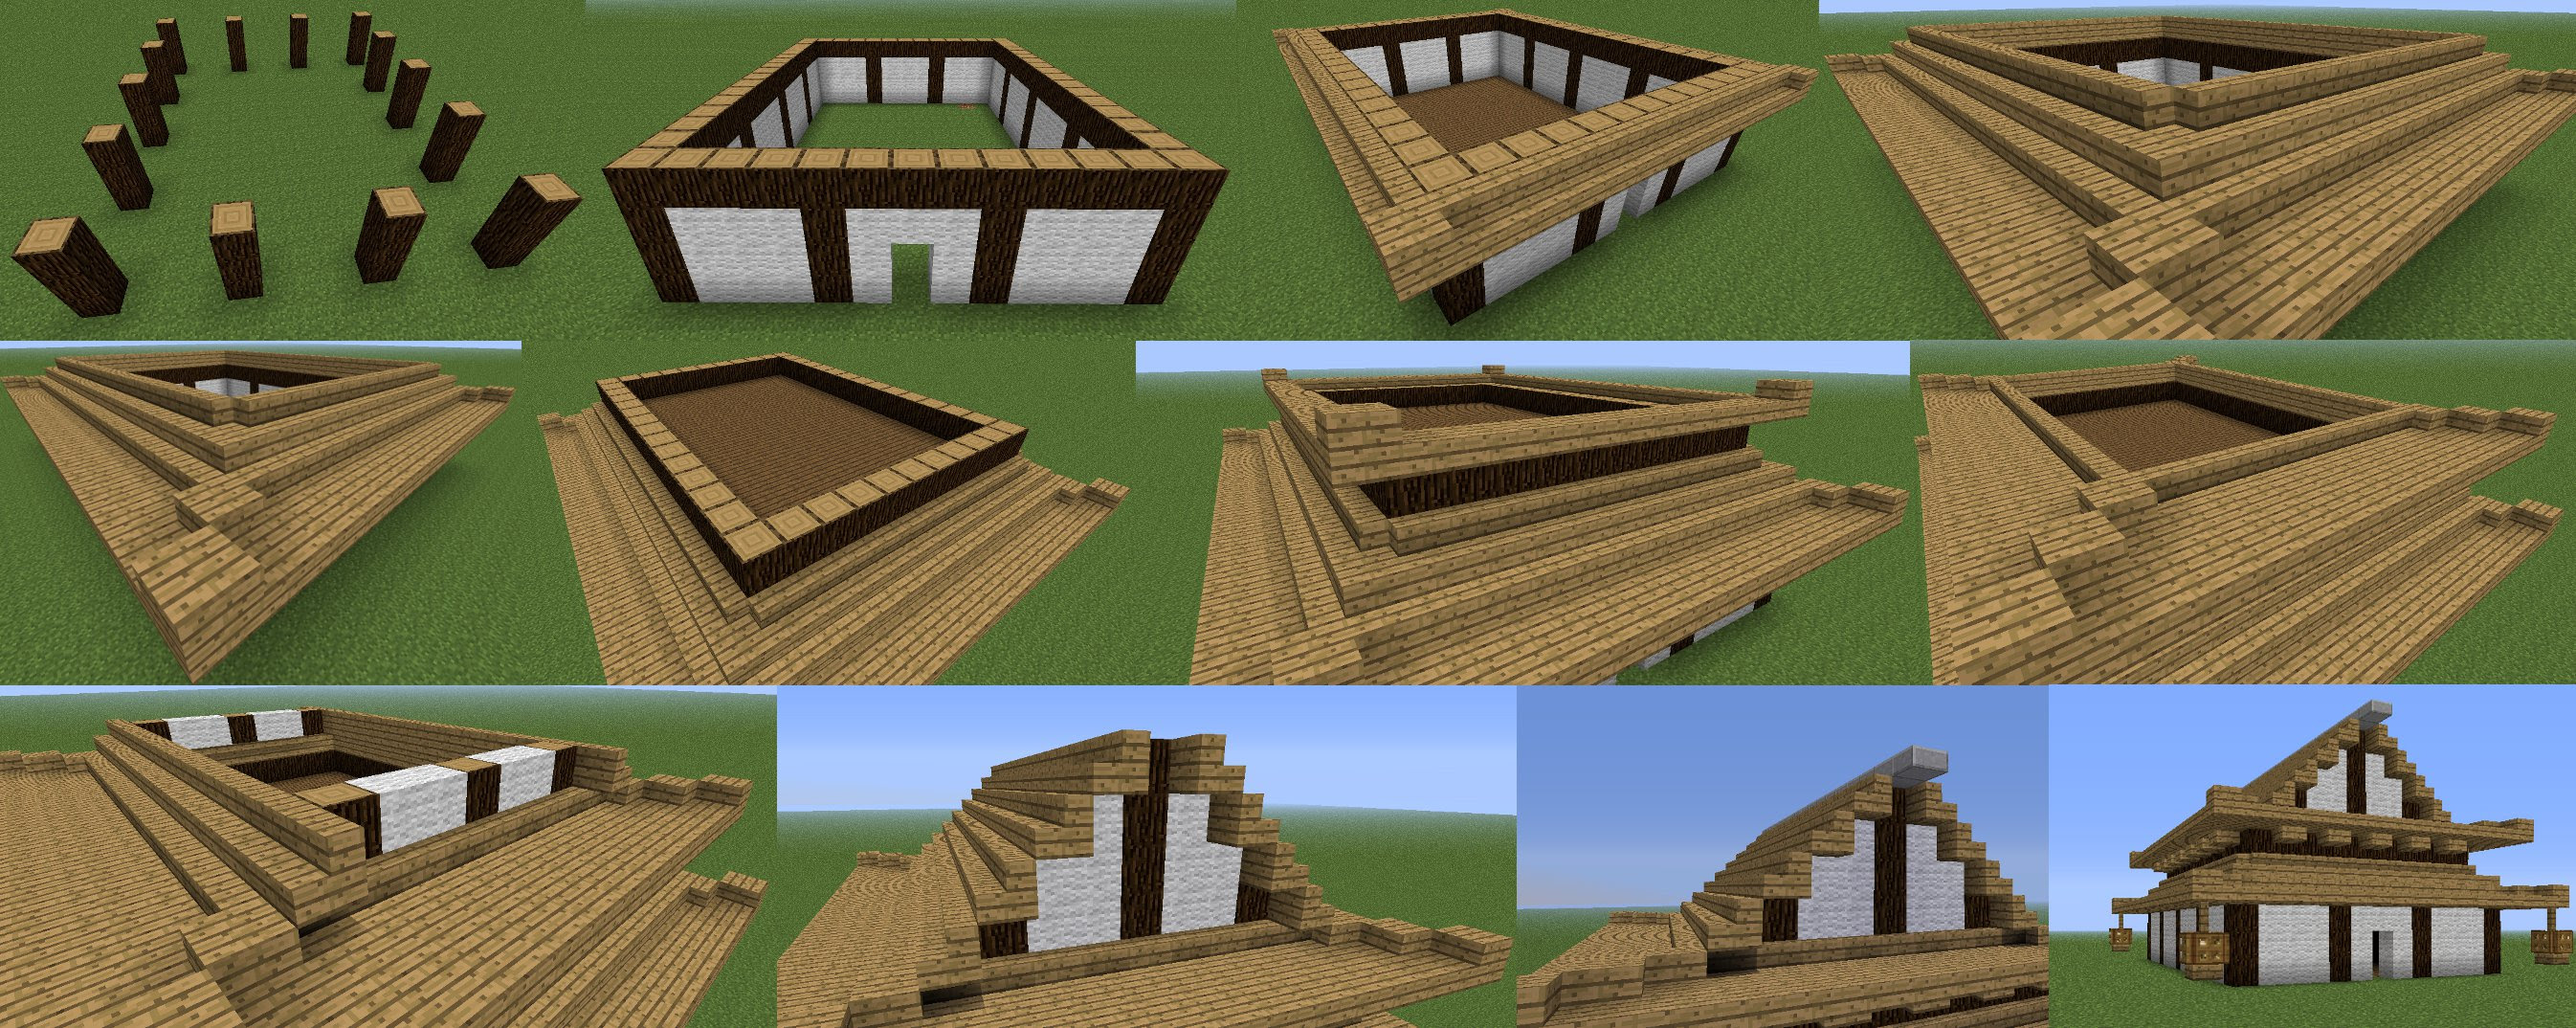 Japanese Building Style In Minecraft Minecraft Guides